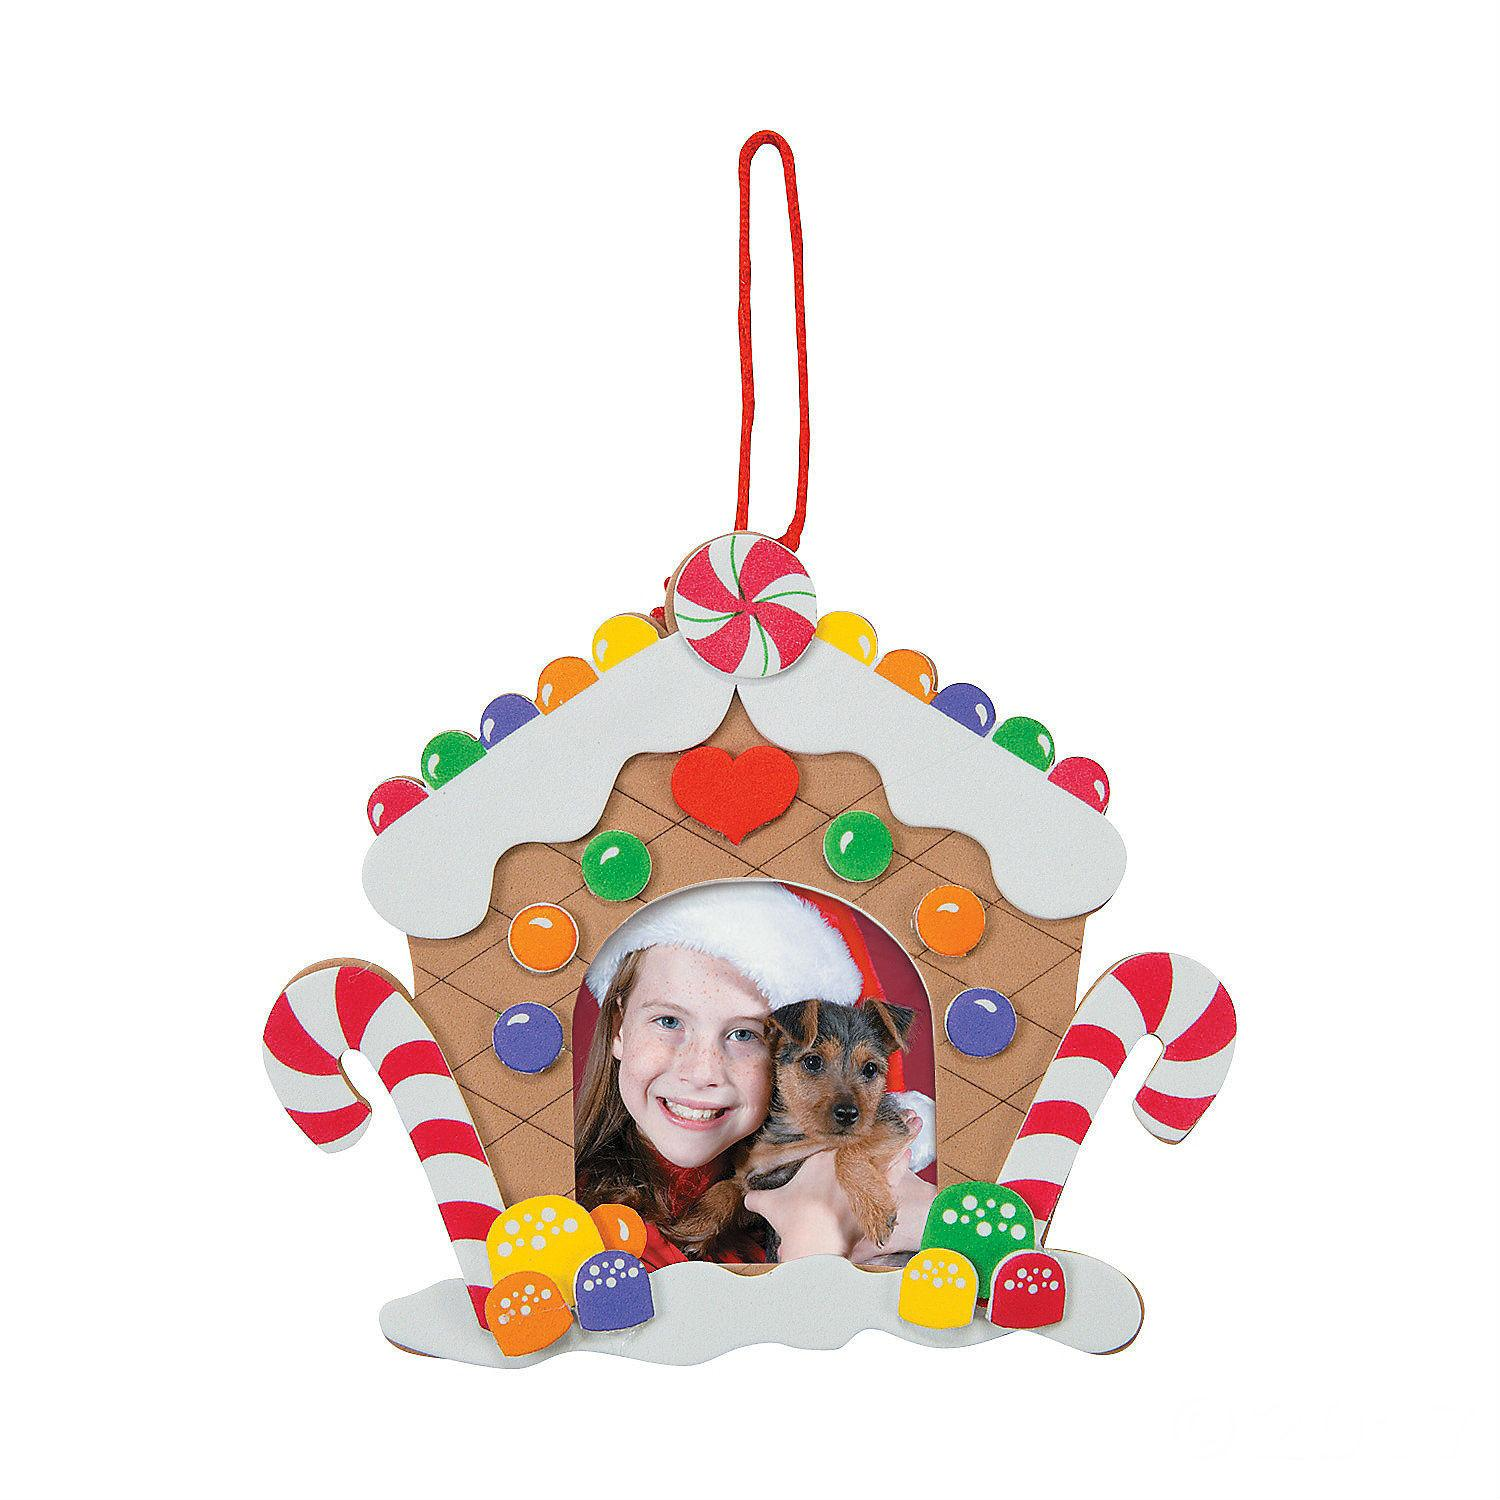 Gingerbread House Frame Craft Kit Busy Body Kids